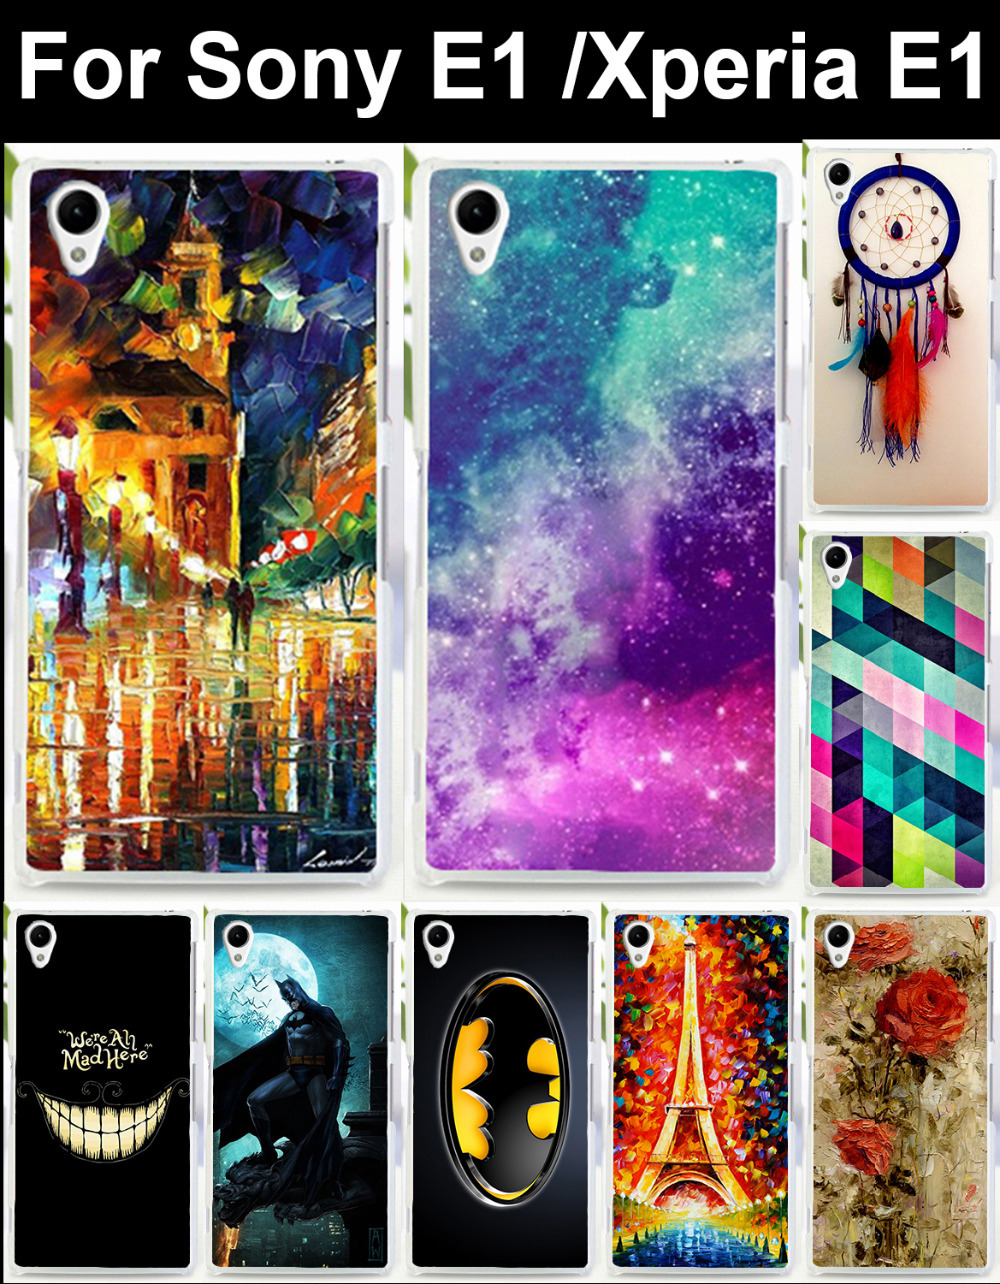 1PC/lot High quality mobile phone case protective case hard Back cover Skin Shell for Sony E1 Xperia E1(China (Mainland))